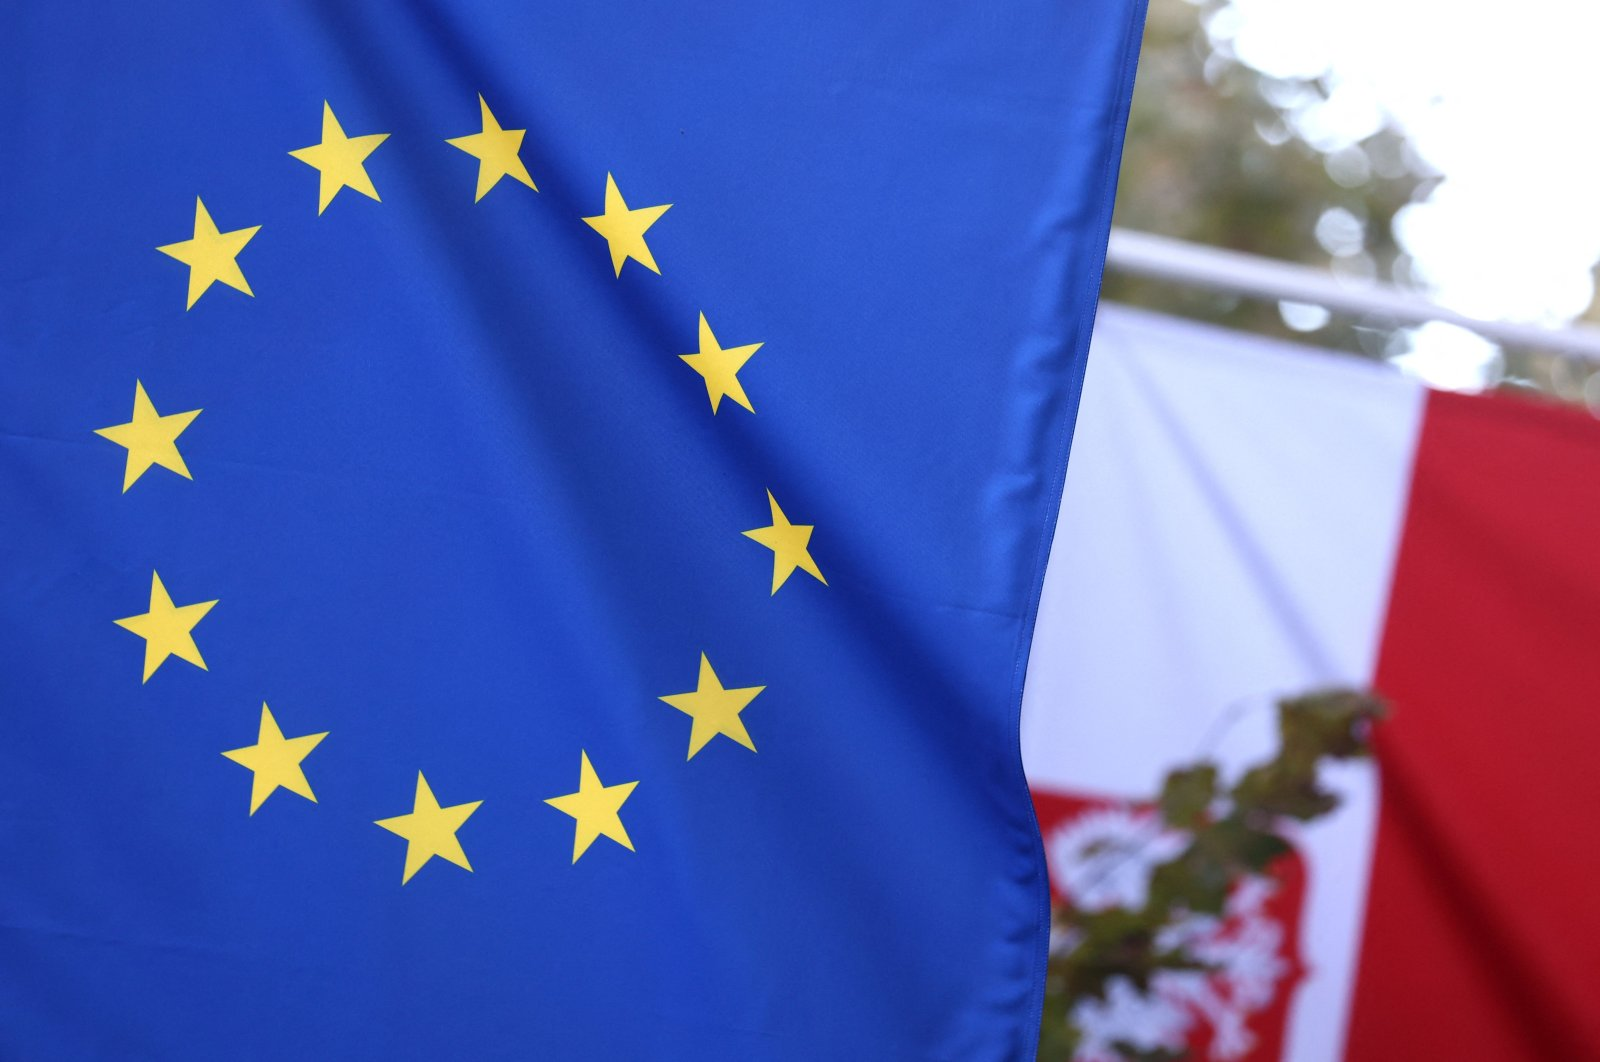 A picture taken on Oct. 8, 2021, shows the Polish flag and European Union flag at the entrance of Poland's permanent representation to the EU in Brussels, Belgium. (AFP Photo)